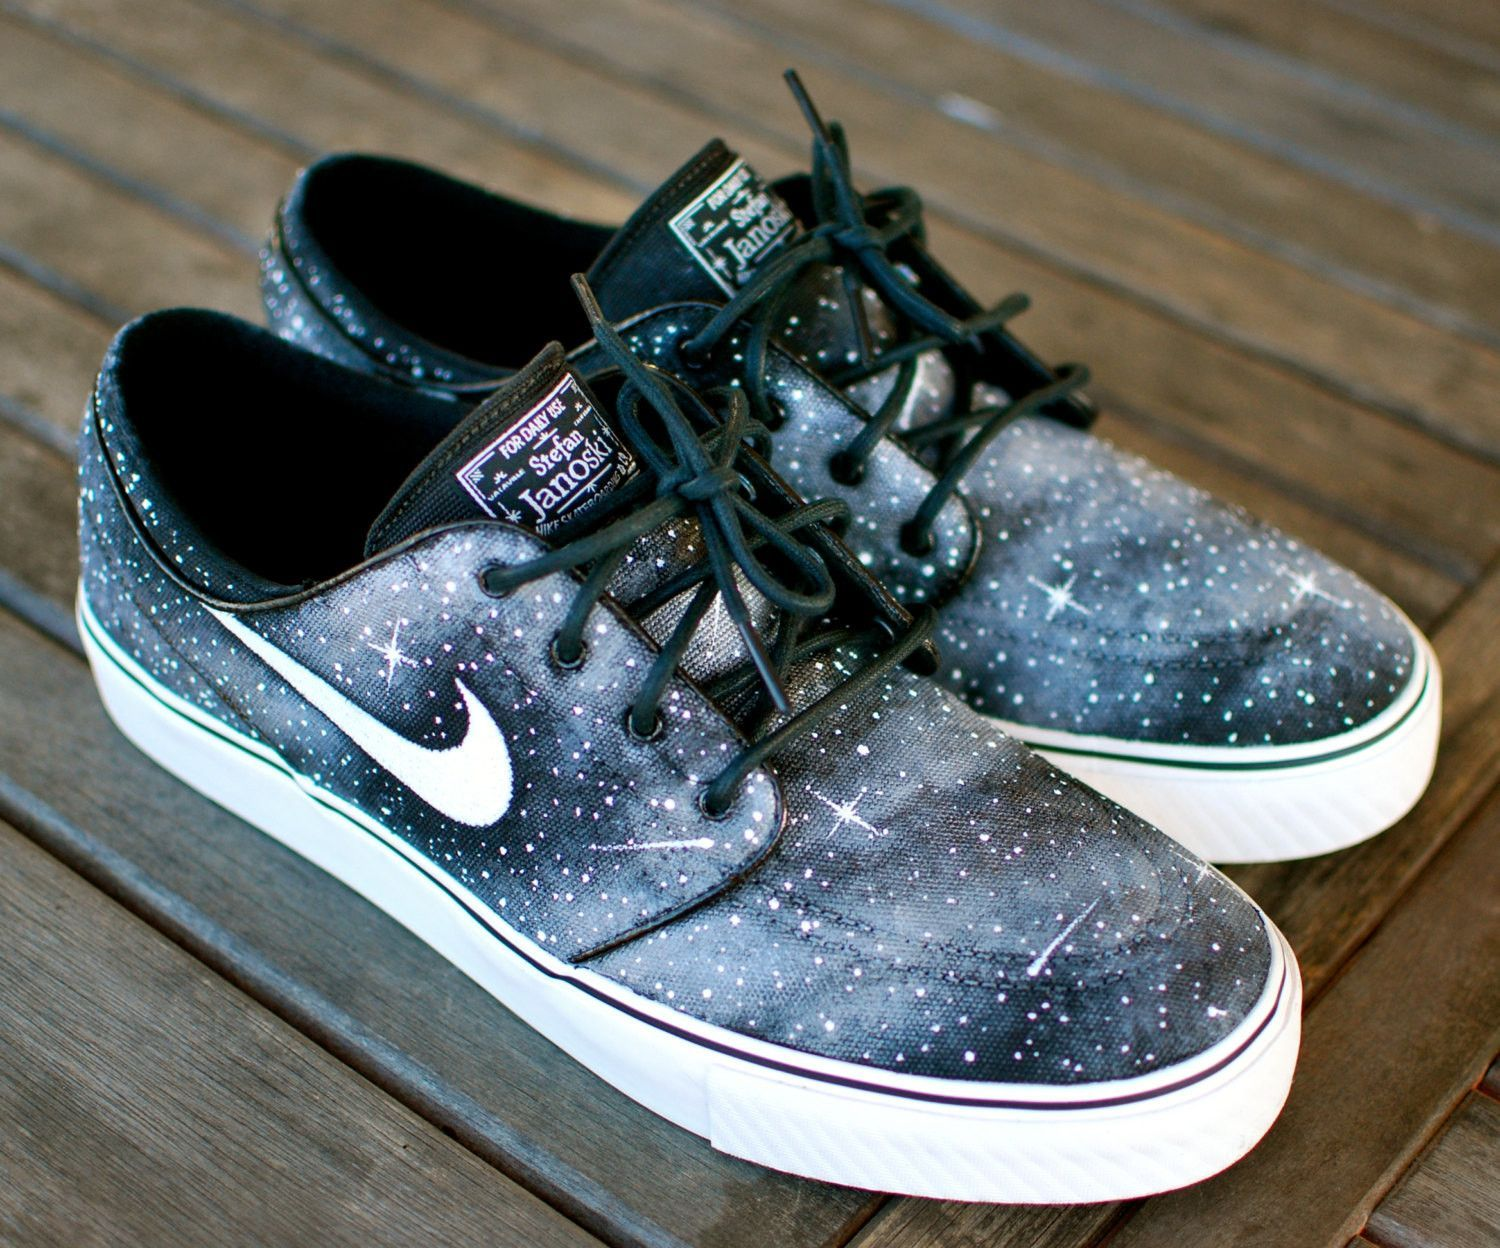 Custom Hand Painted Twilight Zone Black and White Galaxy Nike Stefan Janoski  Skate Shoes Nike Zoom 73e8cf9d806a